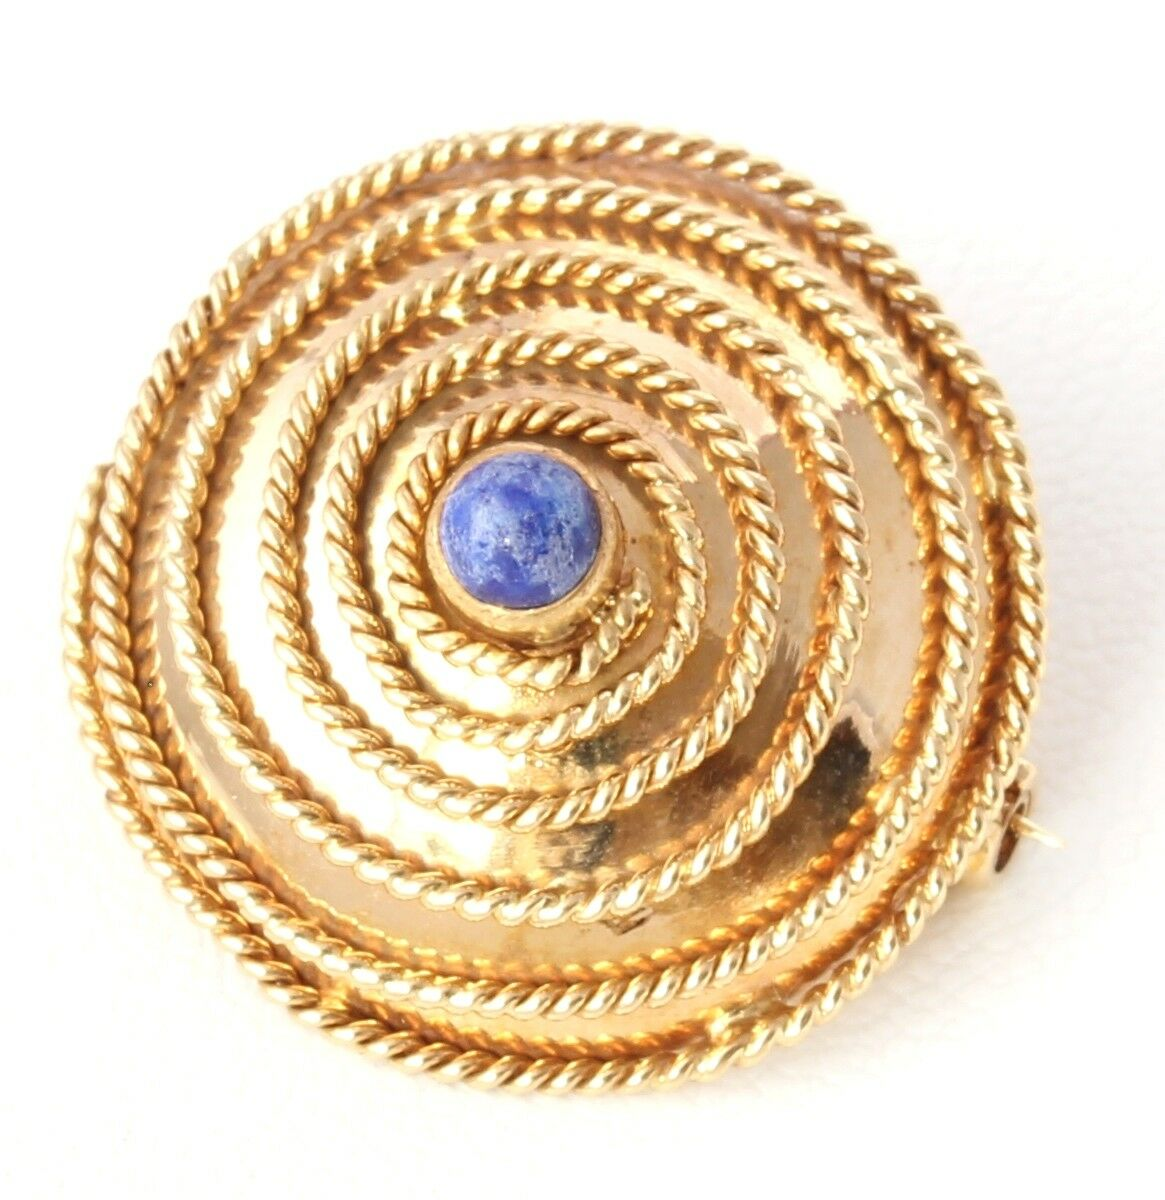 Antique   Vintage 18ct gold Filigree & Lapis Lblueei Round Brooch. Gift Boxed.